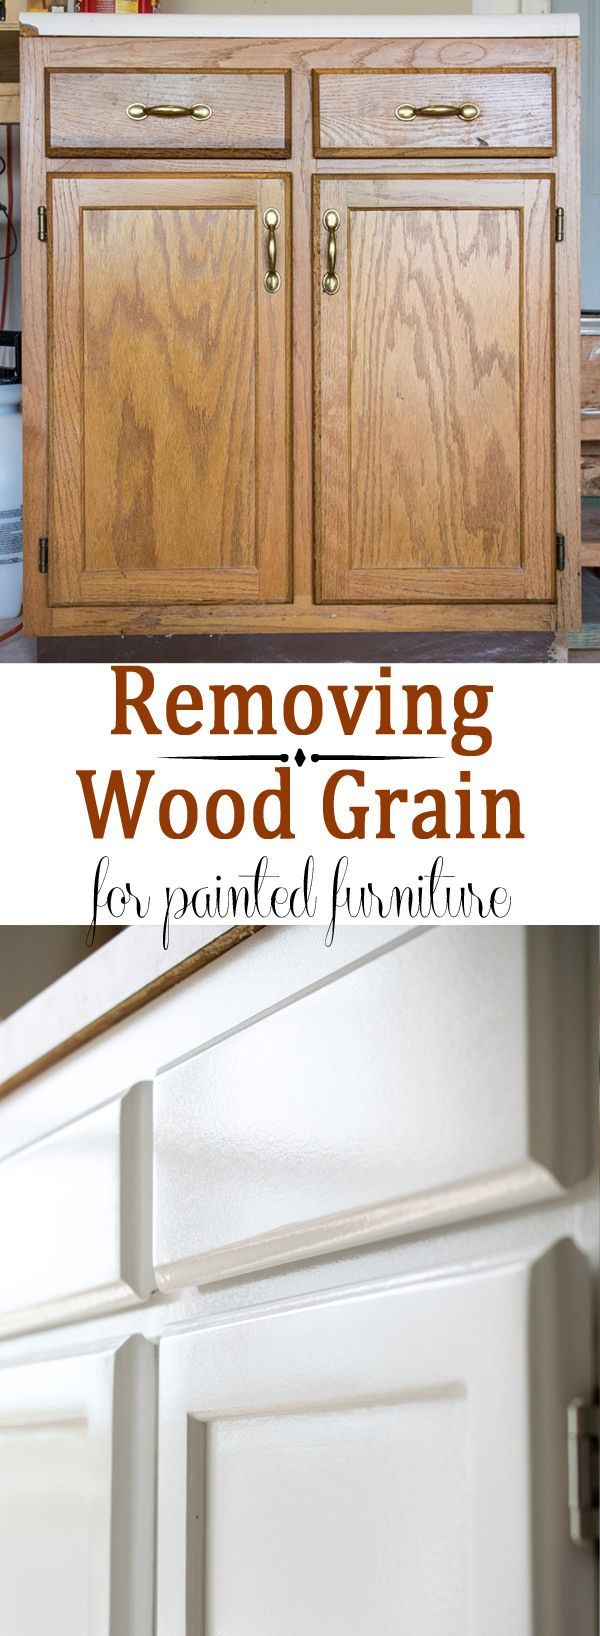 best 20 oak cabinet kitchen ideas on pinterest oak cabinet how to get a smooth finish when painting oak cabinets that have pronounced wood grain and